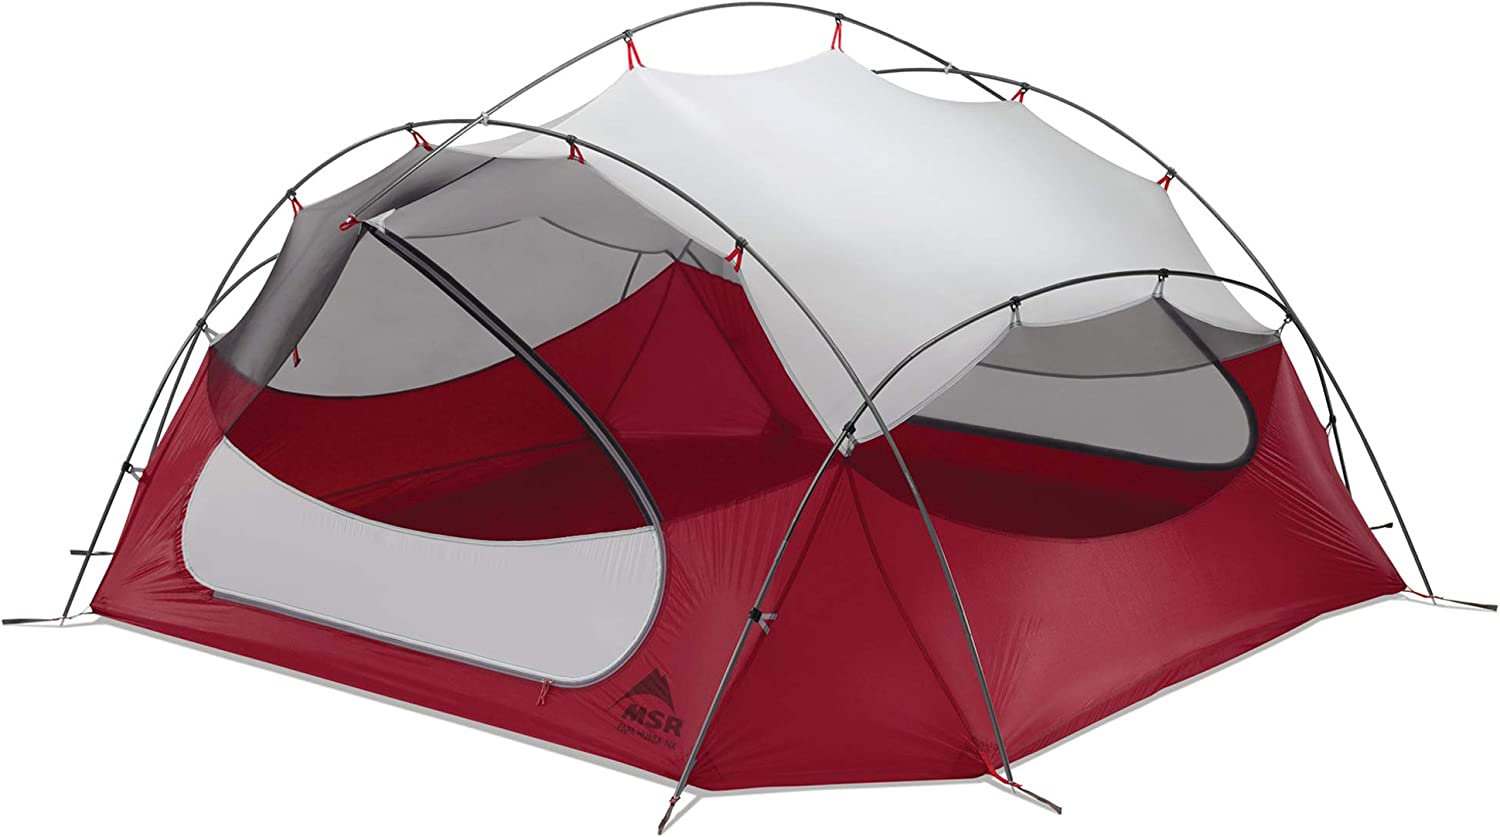 Msr Papa Hubba NX Tent: 4 Person 3 Season